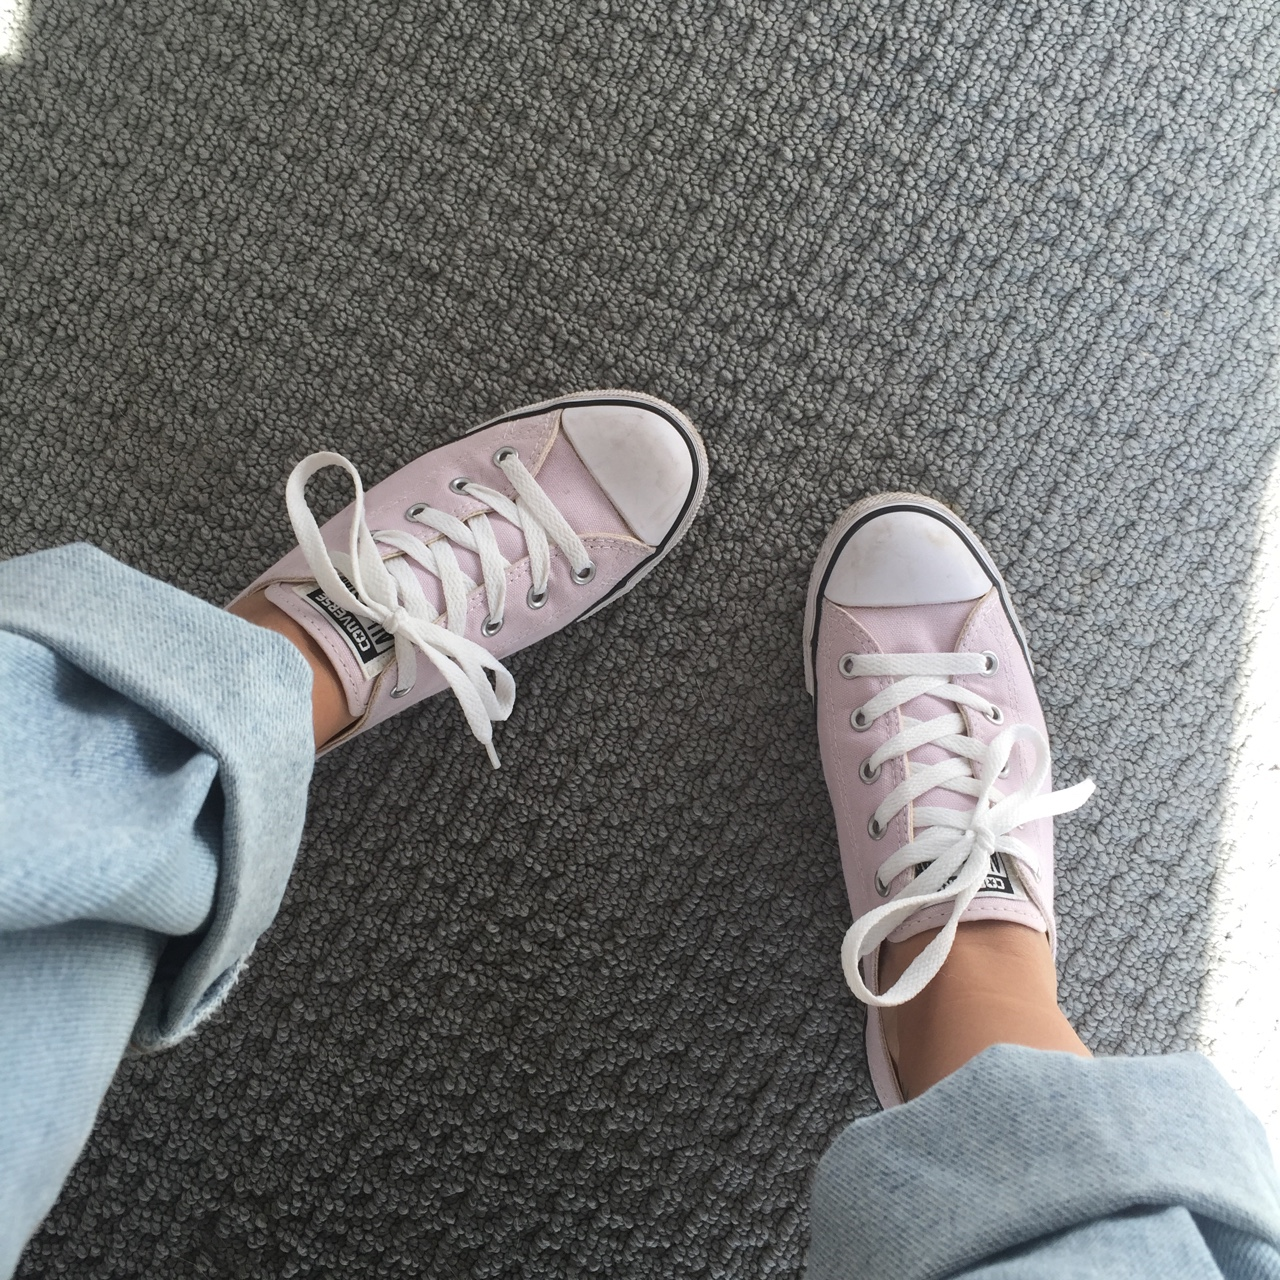 Price drop! Baby pink converse shoes